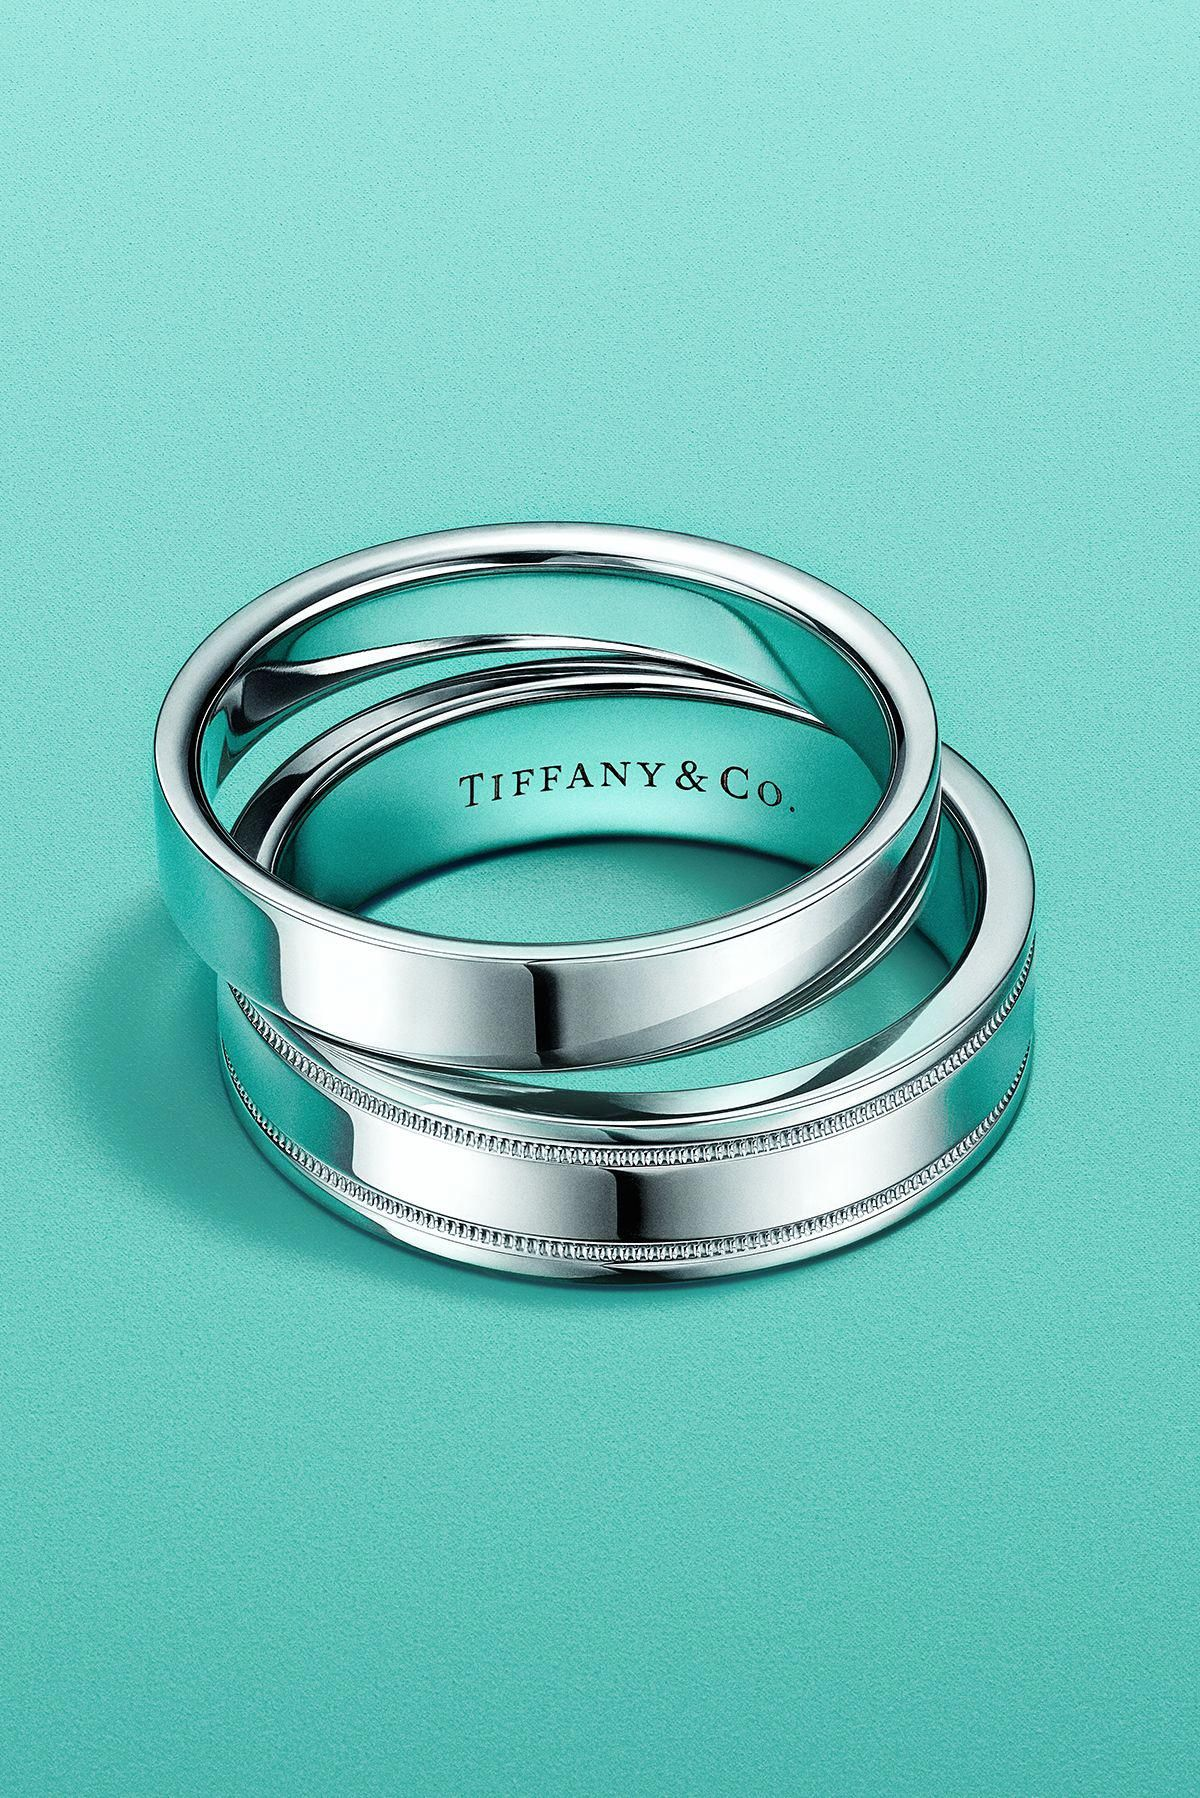 Tiffany Classic™ and Tiffany Flat band rings in platinum